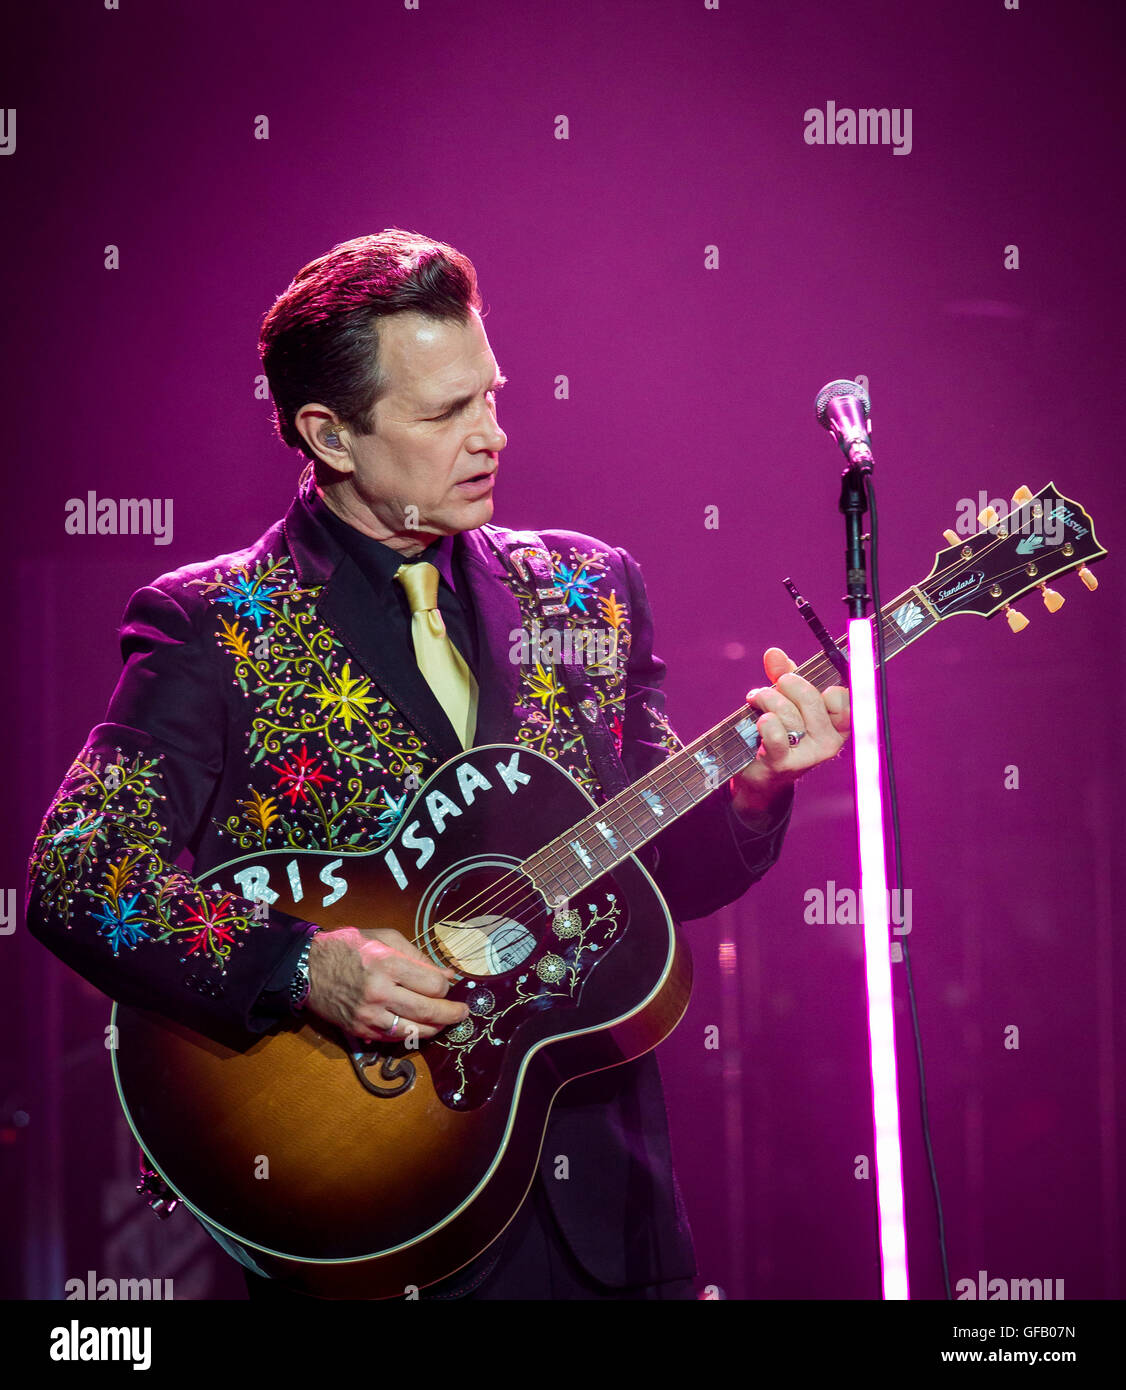 Las Vegas, Nevada, USA. 30 juillet, 2016. Chris Isaak effectue au niveau de l'articulation du Hard Rock Hotel & Casino à Las Vegas, NV le 30 juillet 2016. Crédit : Erik Kabik Photographie/ MediaPunch Banque D'Images